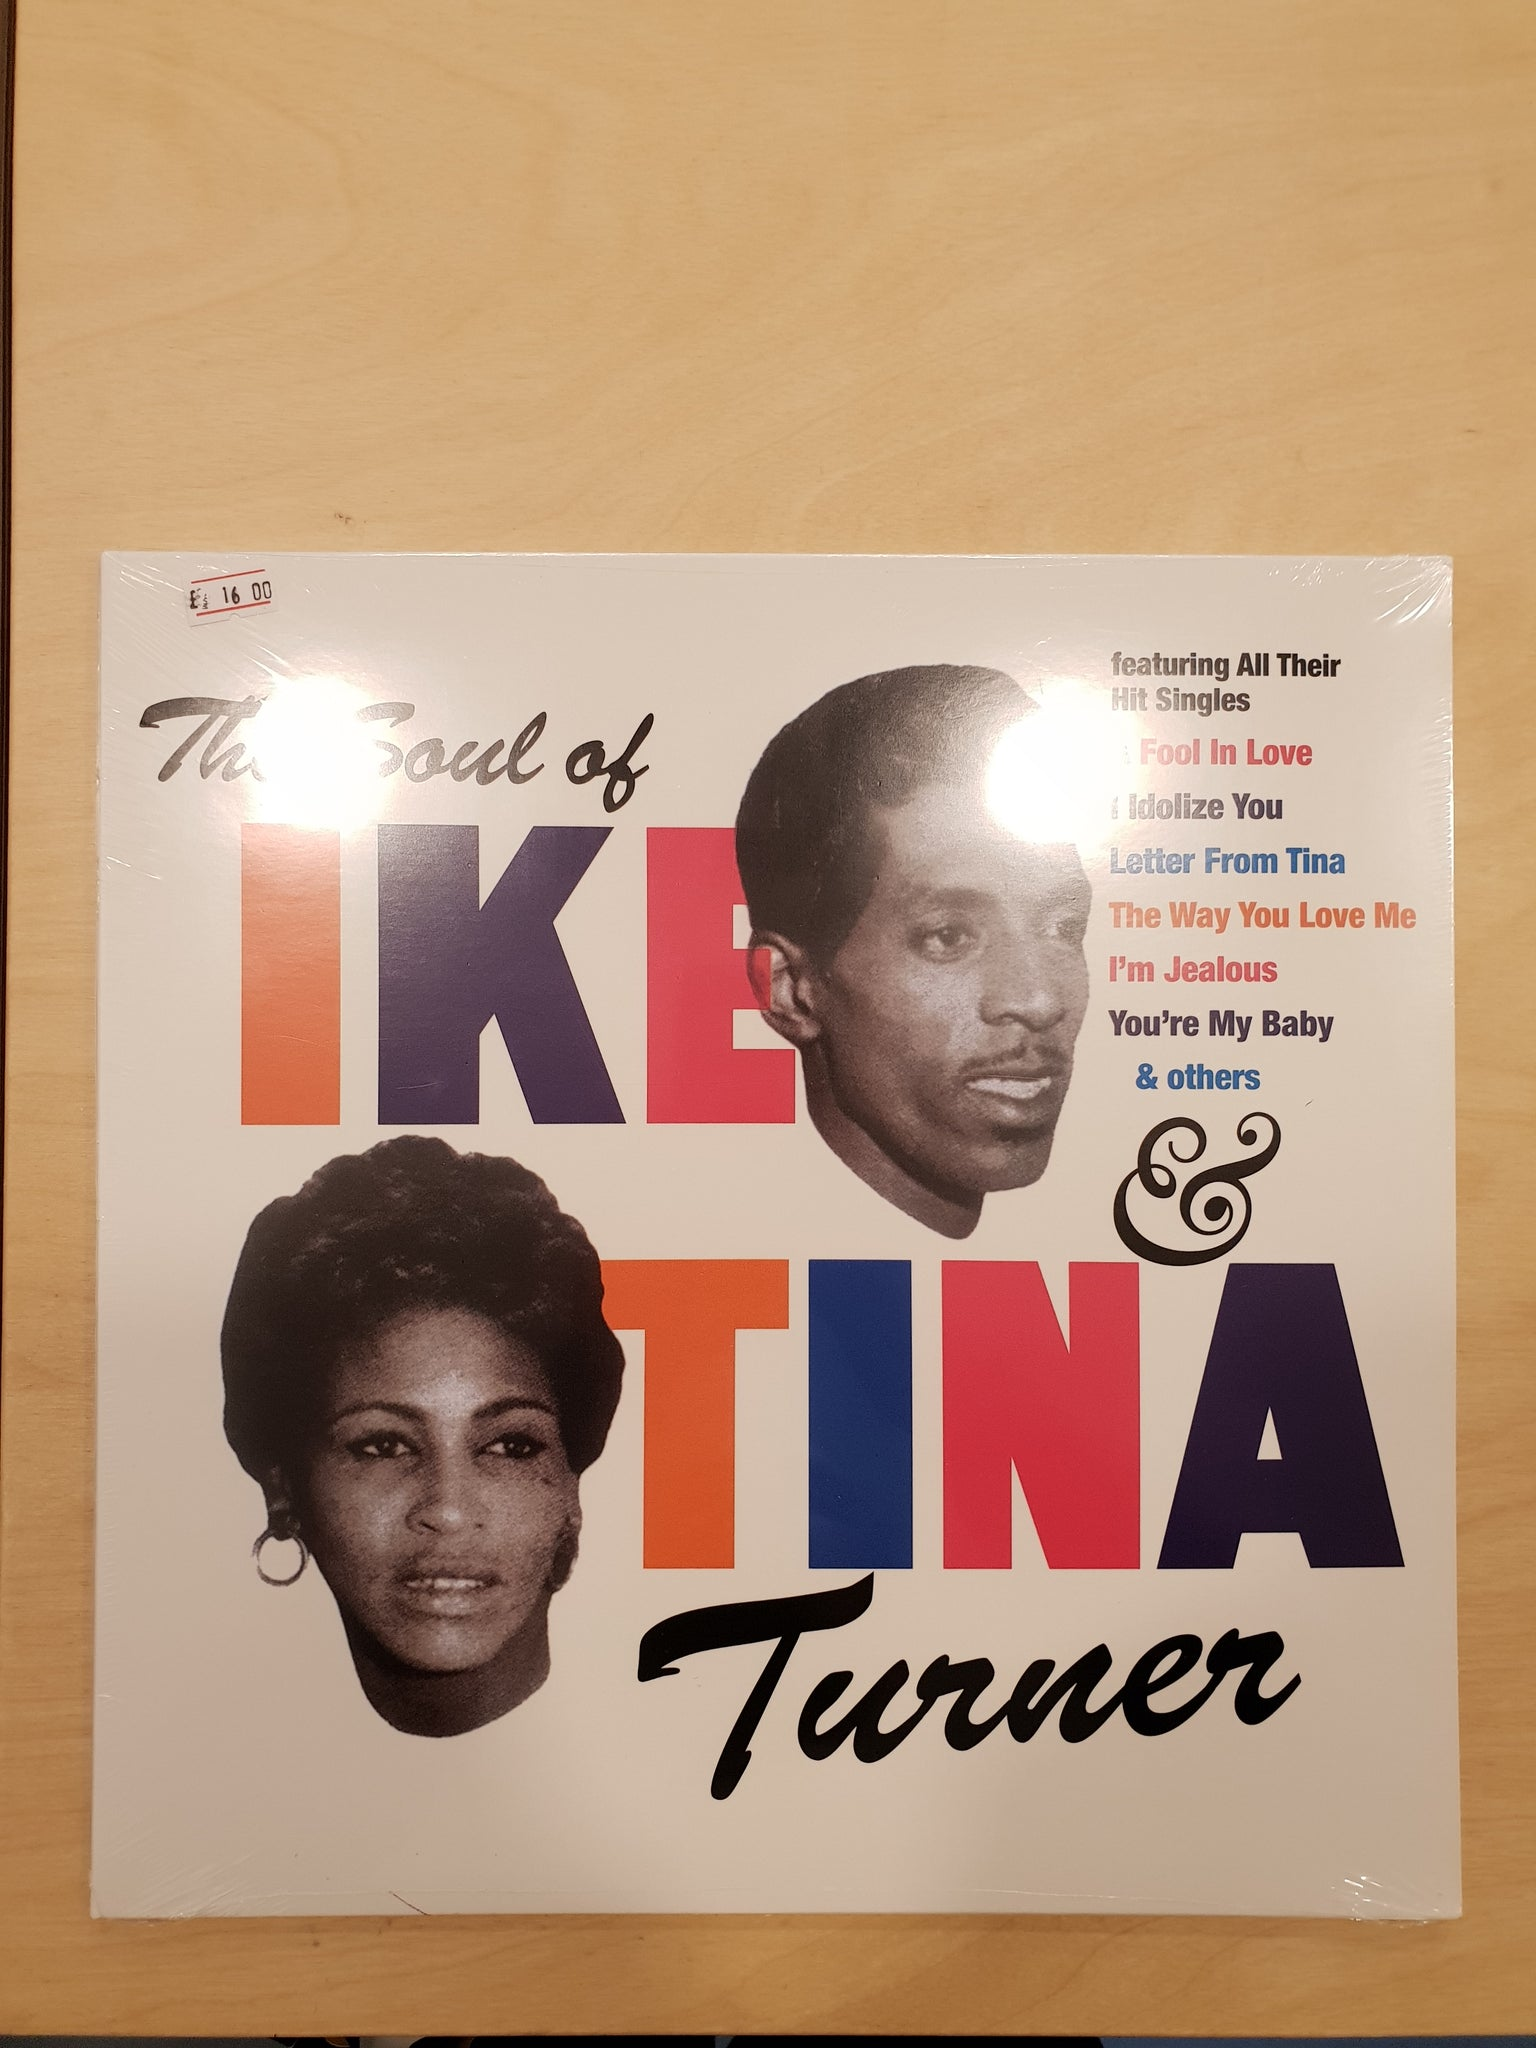 Ike & Tina Turner - The Sound Of Ike & Tina Turner